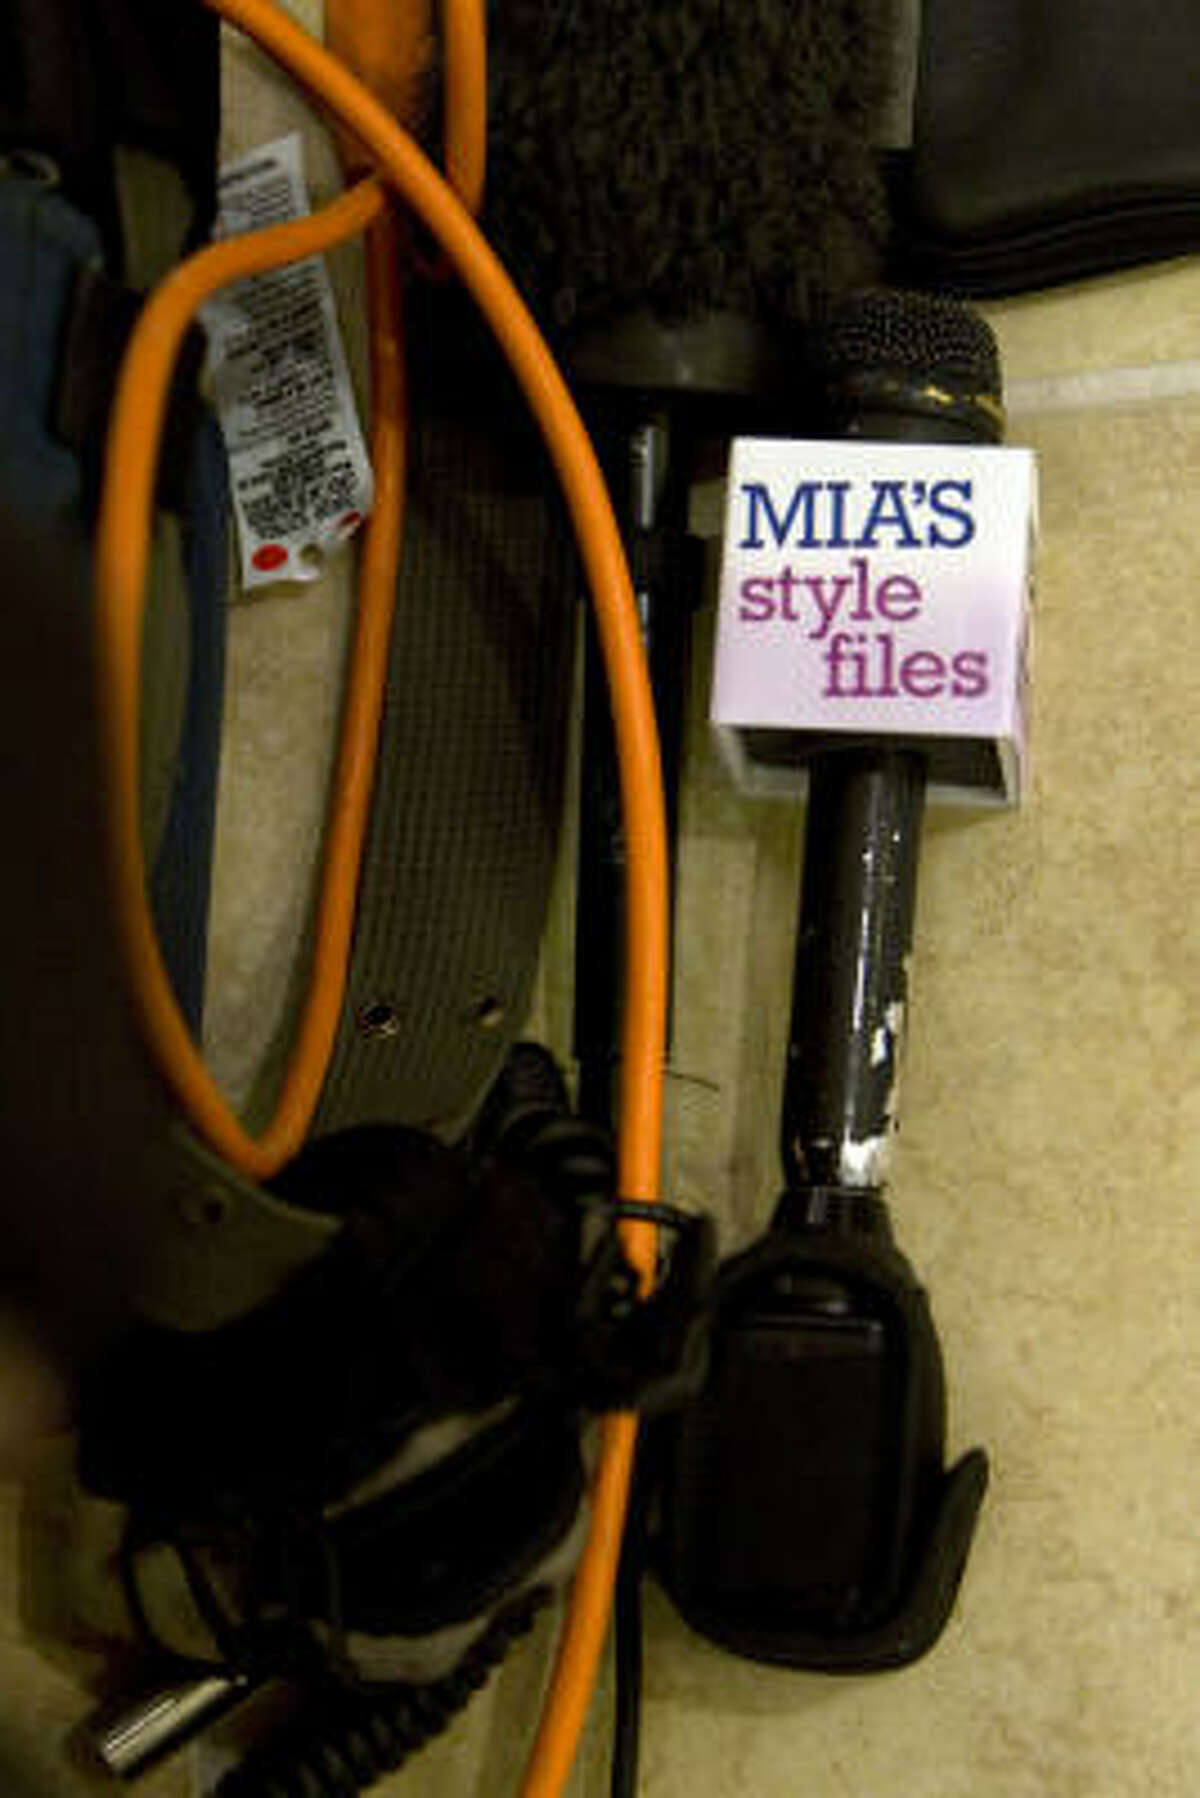 Gradney's microphone sits on the floor while she shoots a segment for Mia's Style File.